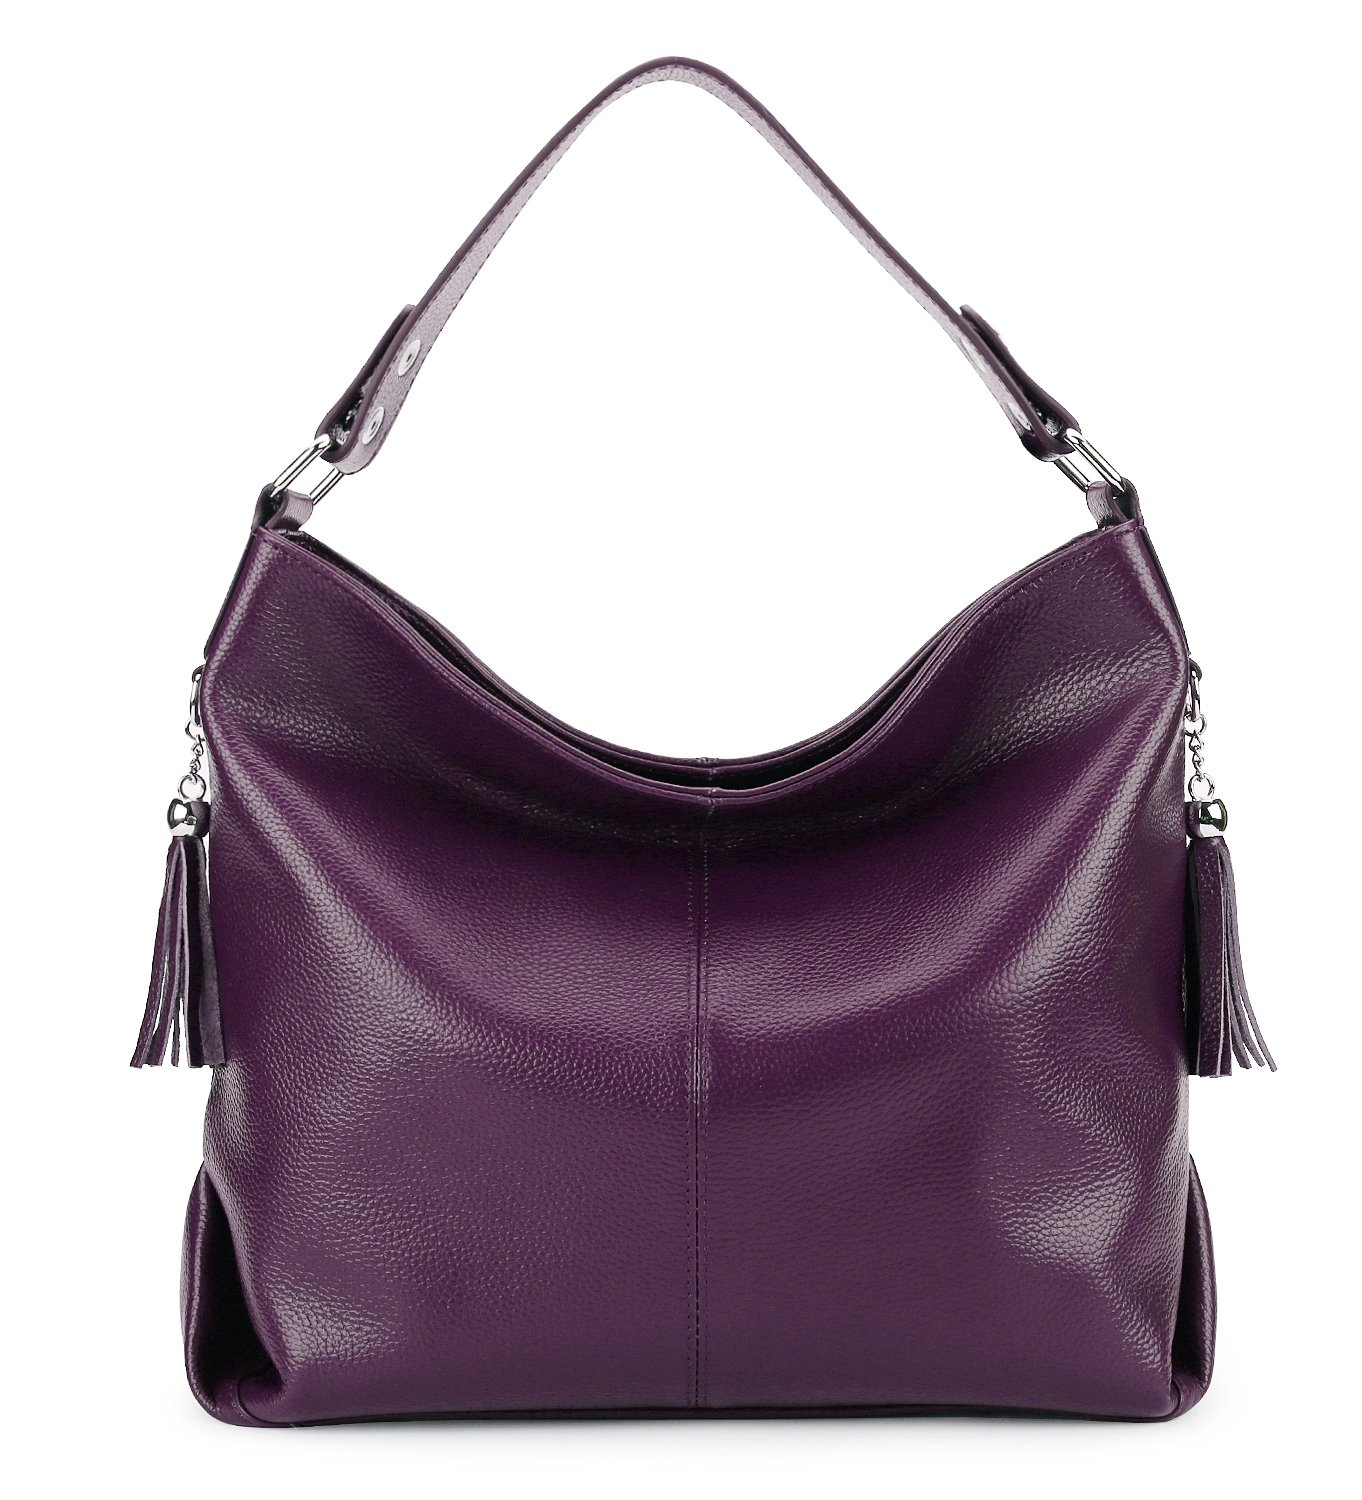 BIG SALE-AINIMOER Womens Leather Vintage Shoulder Bag Ladies Handbags Tote Top-handle Purse Cross Body Bags (Purple)